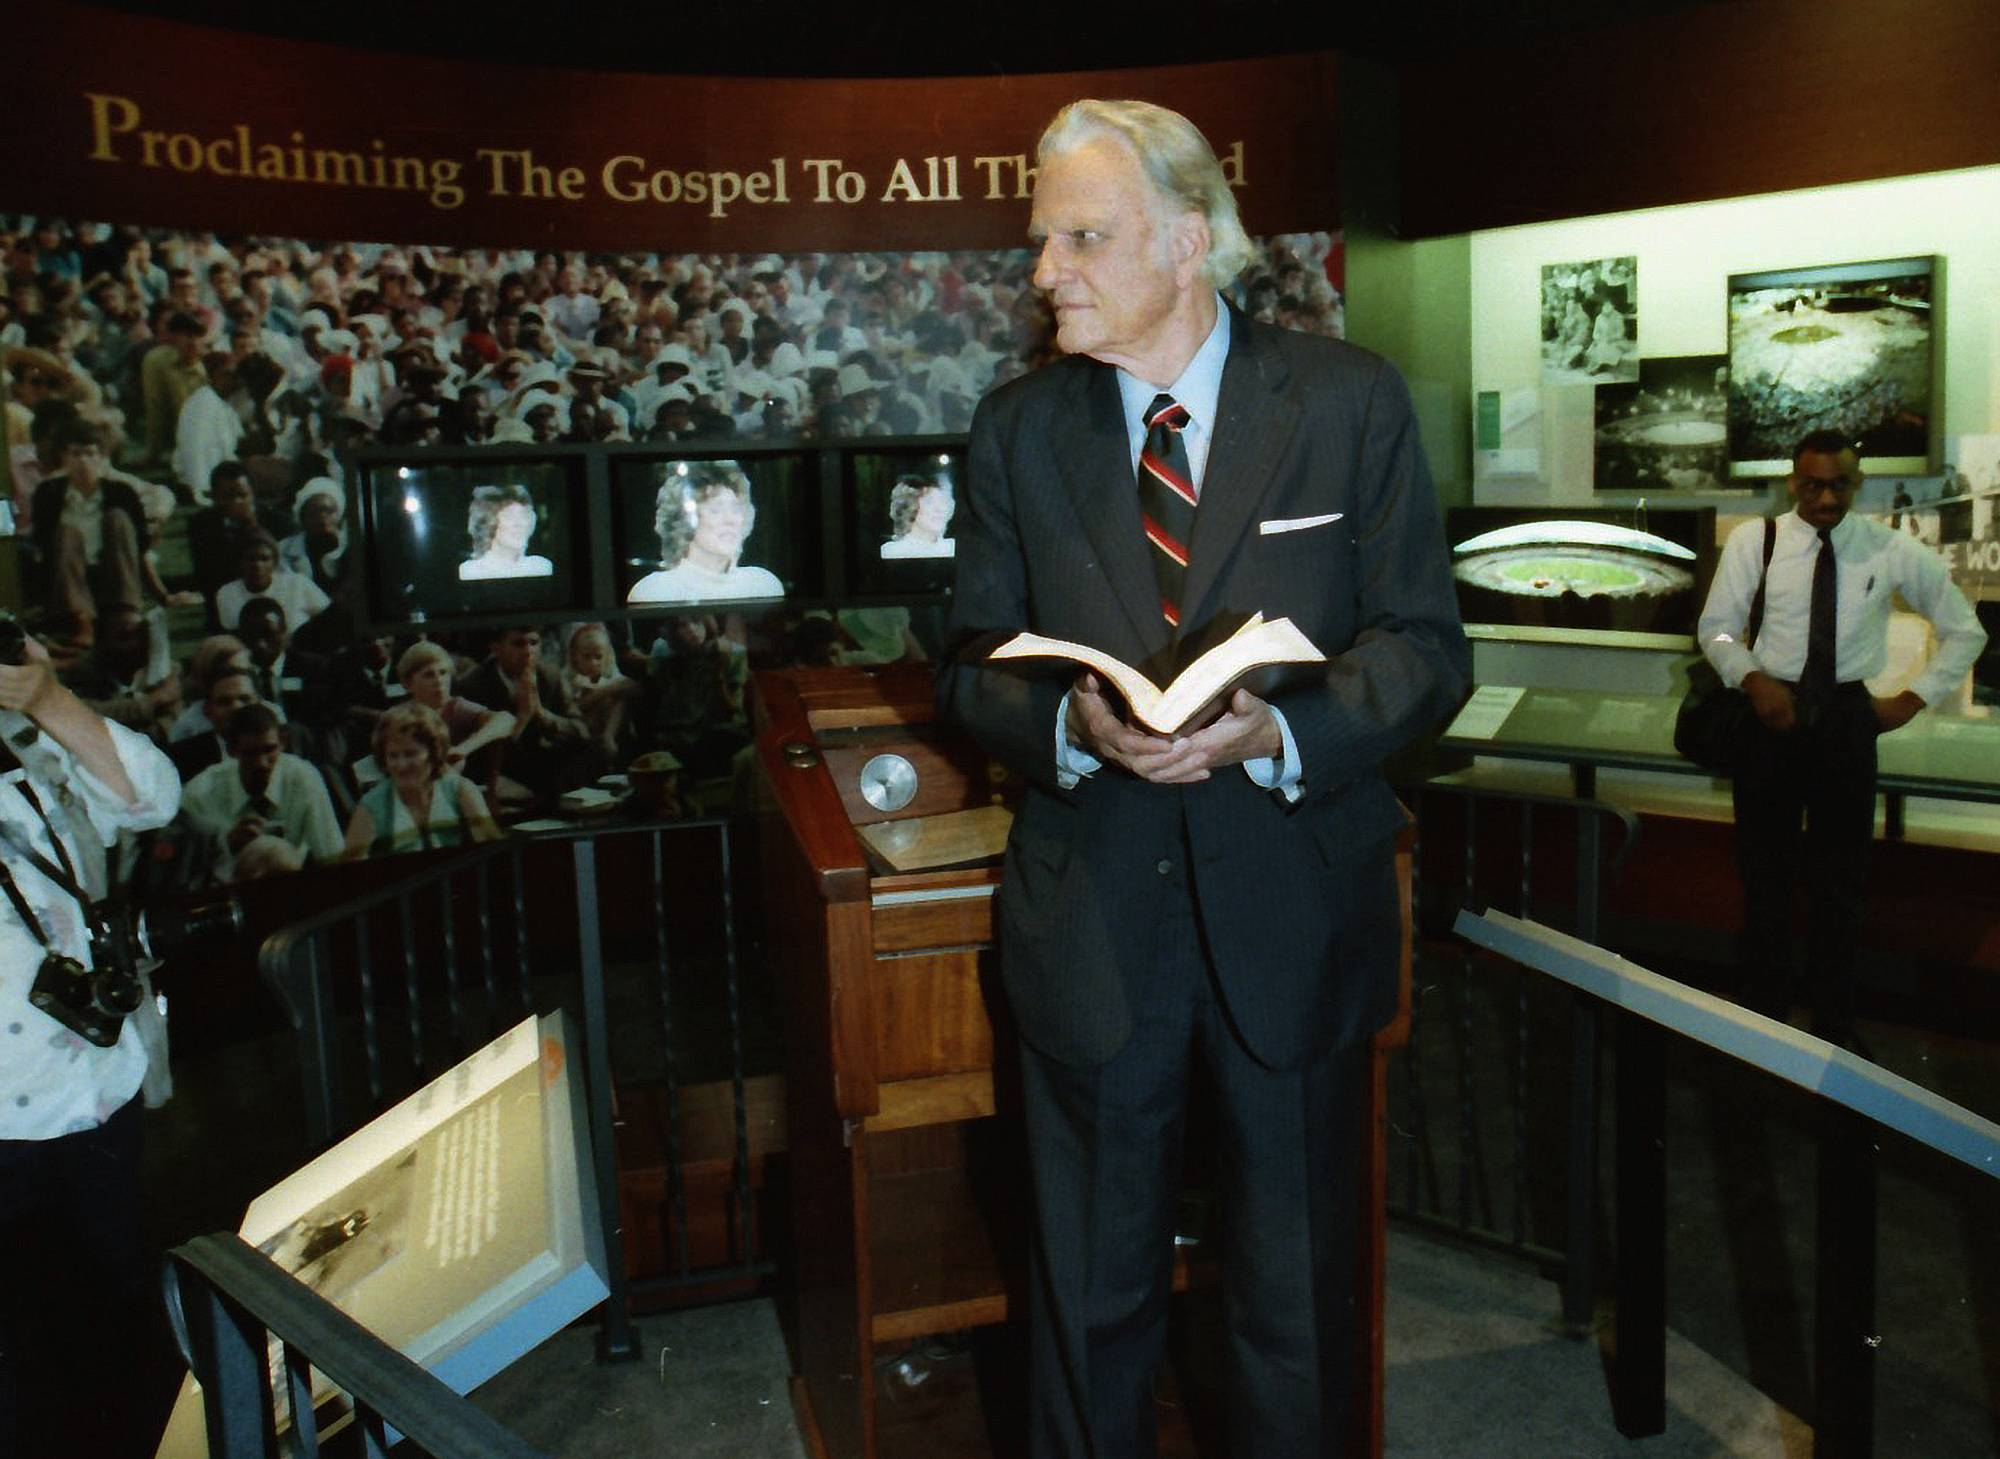 Rev. Billy Graham's legacy spreads from Wheaton to the world